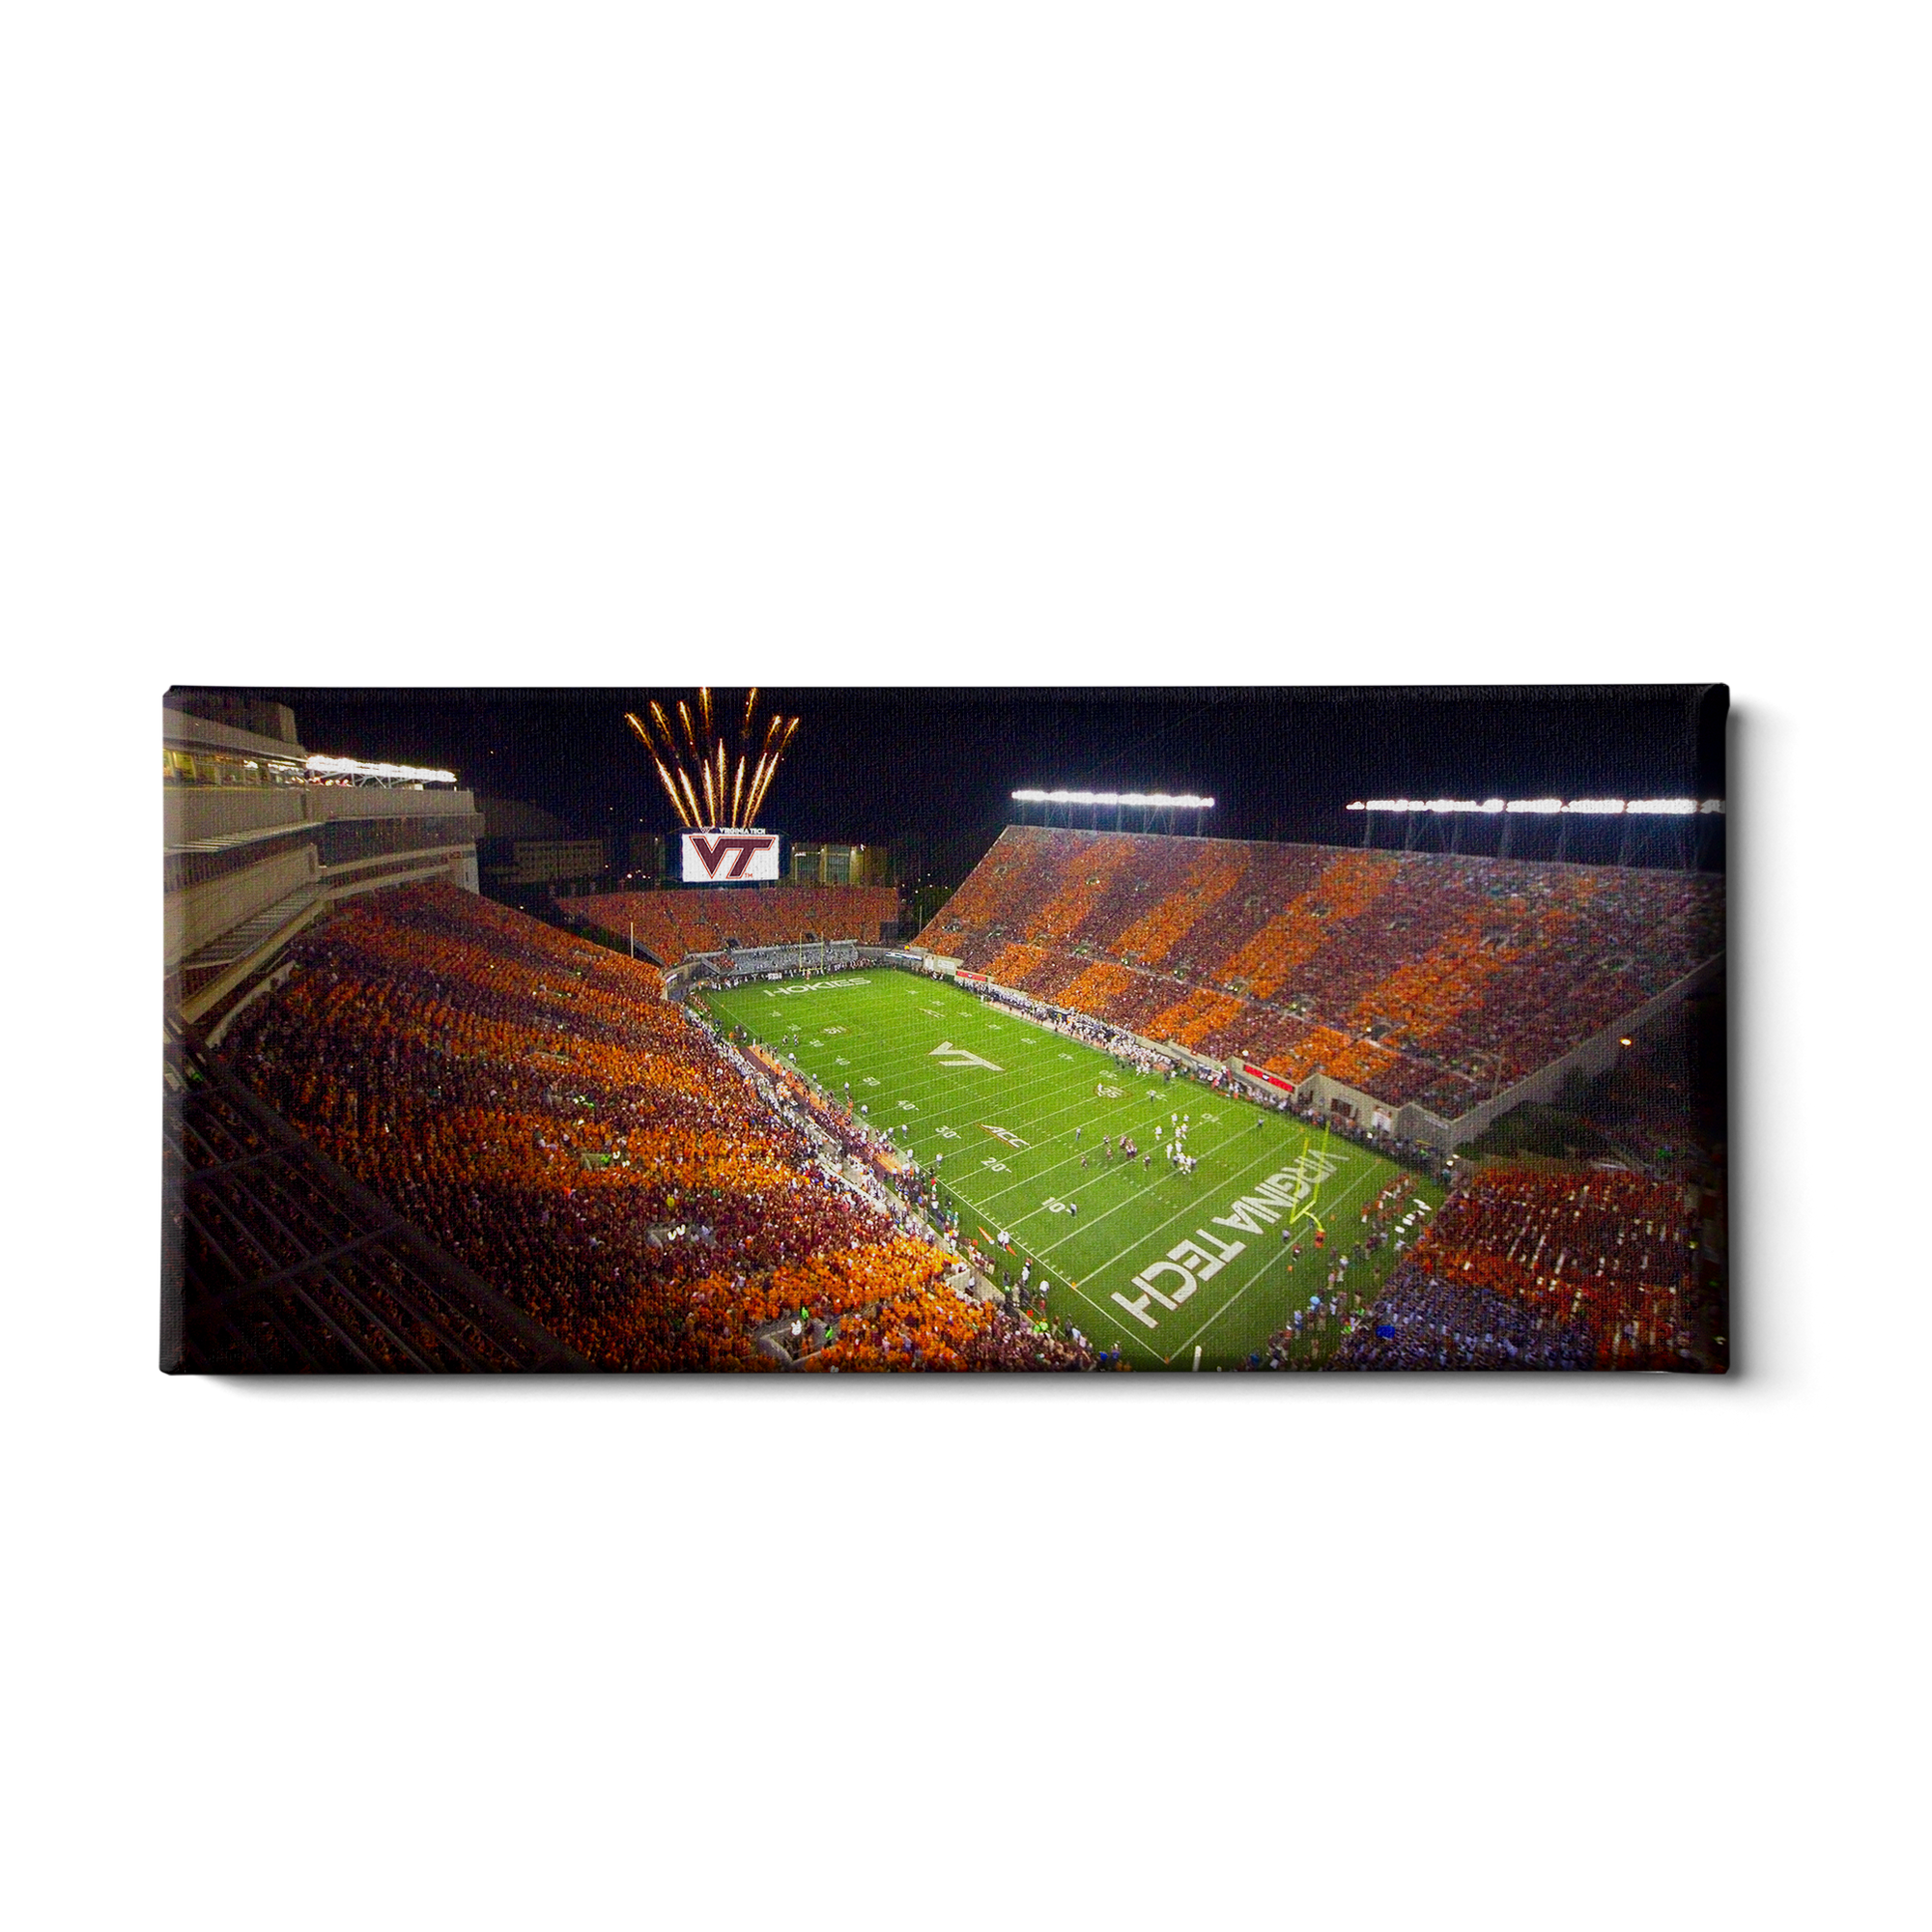 Virginia Tech Hokies - Aerial Striped Lane Stadium Pano #Canvas